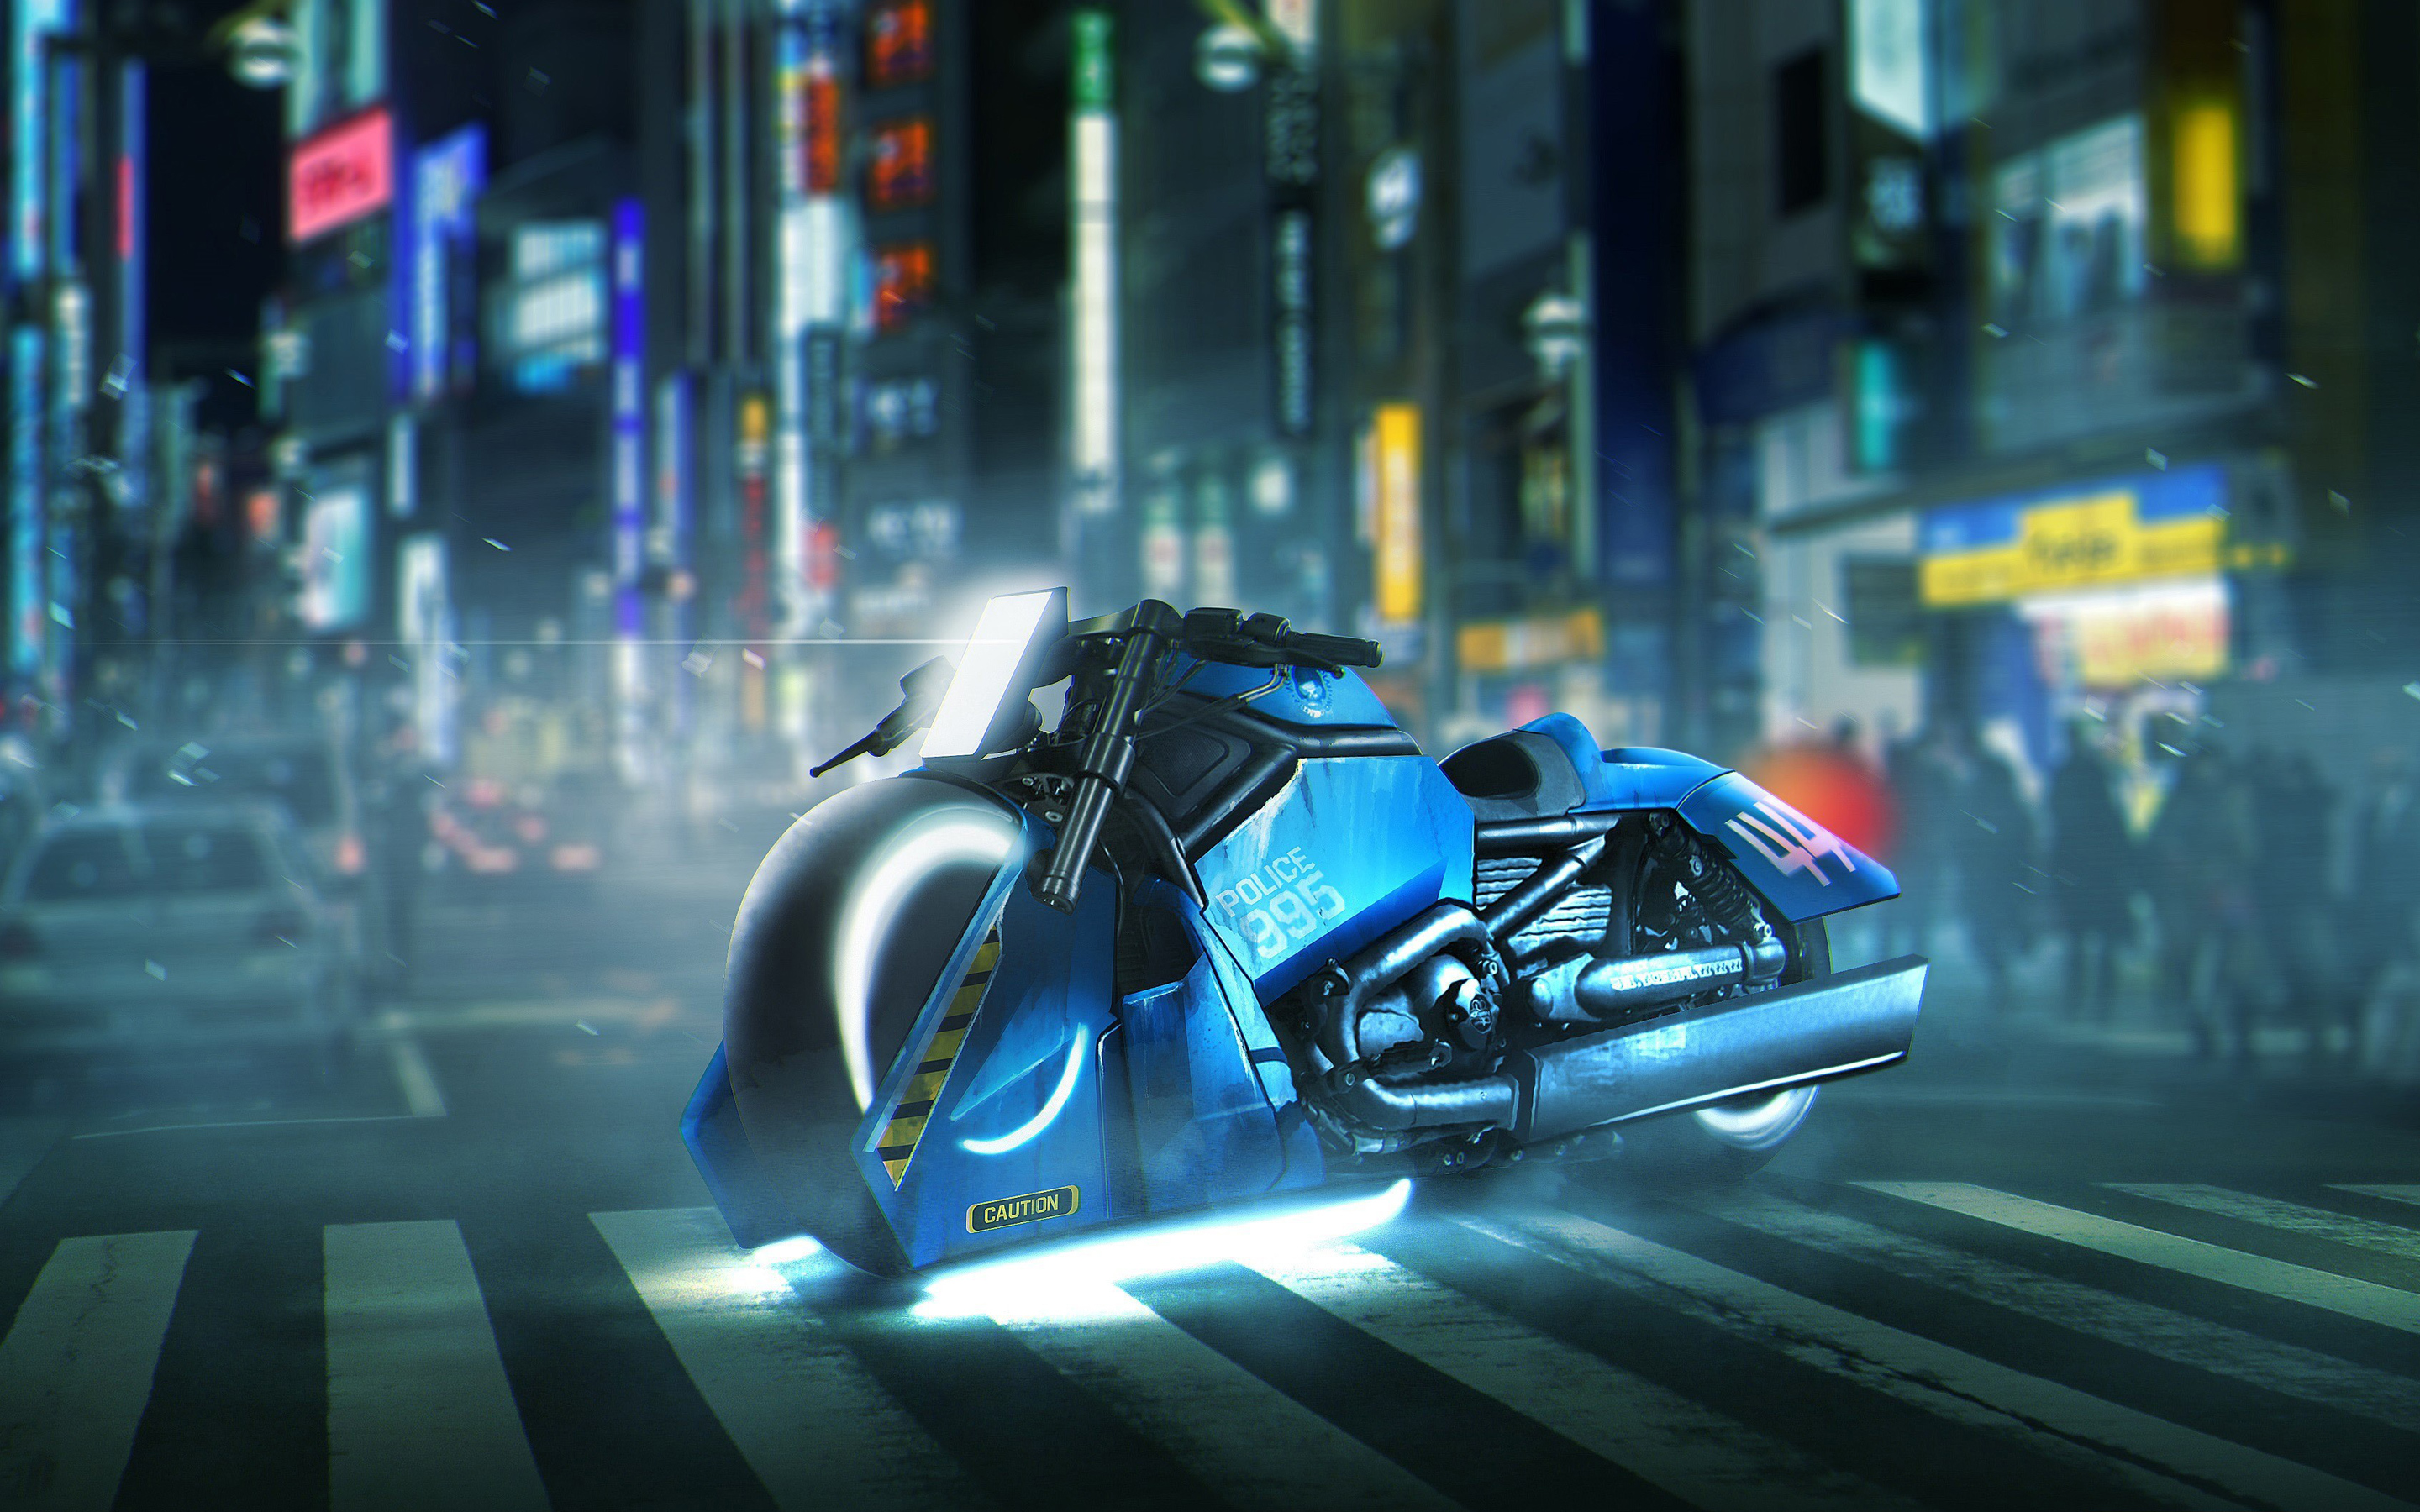 Blade Runner Police 995 Spinner Harley Davidson V Rod Muscle 4K Wallpapers